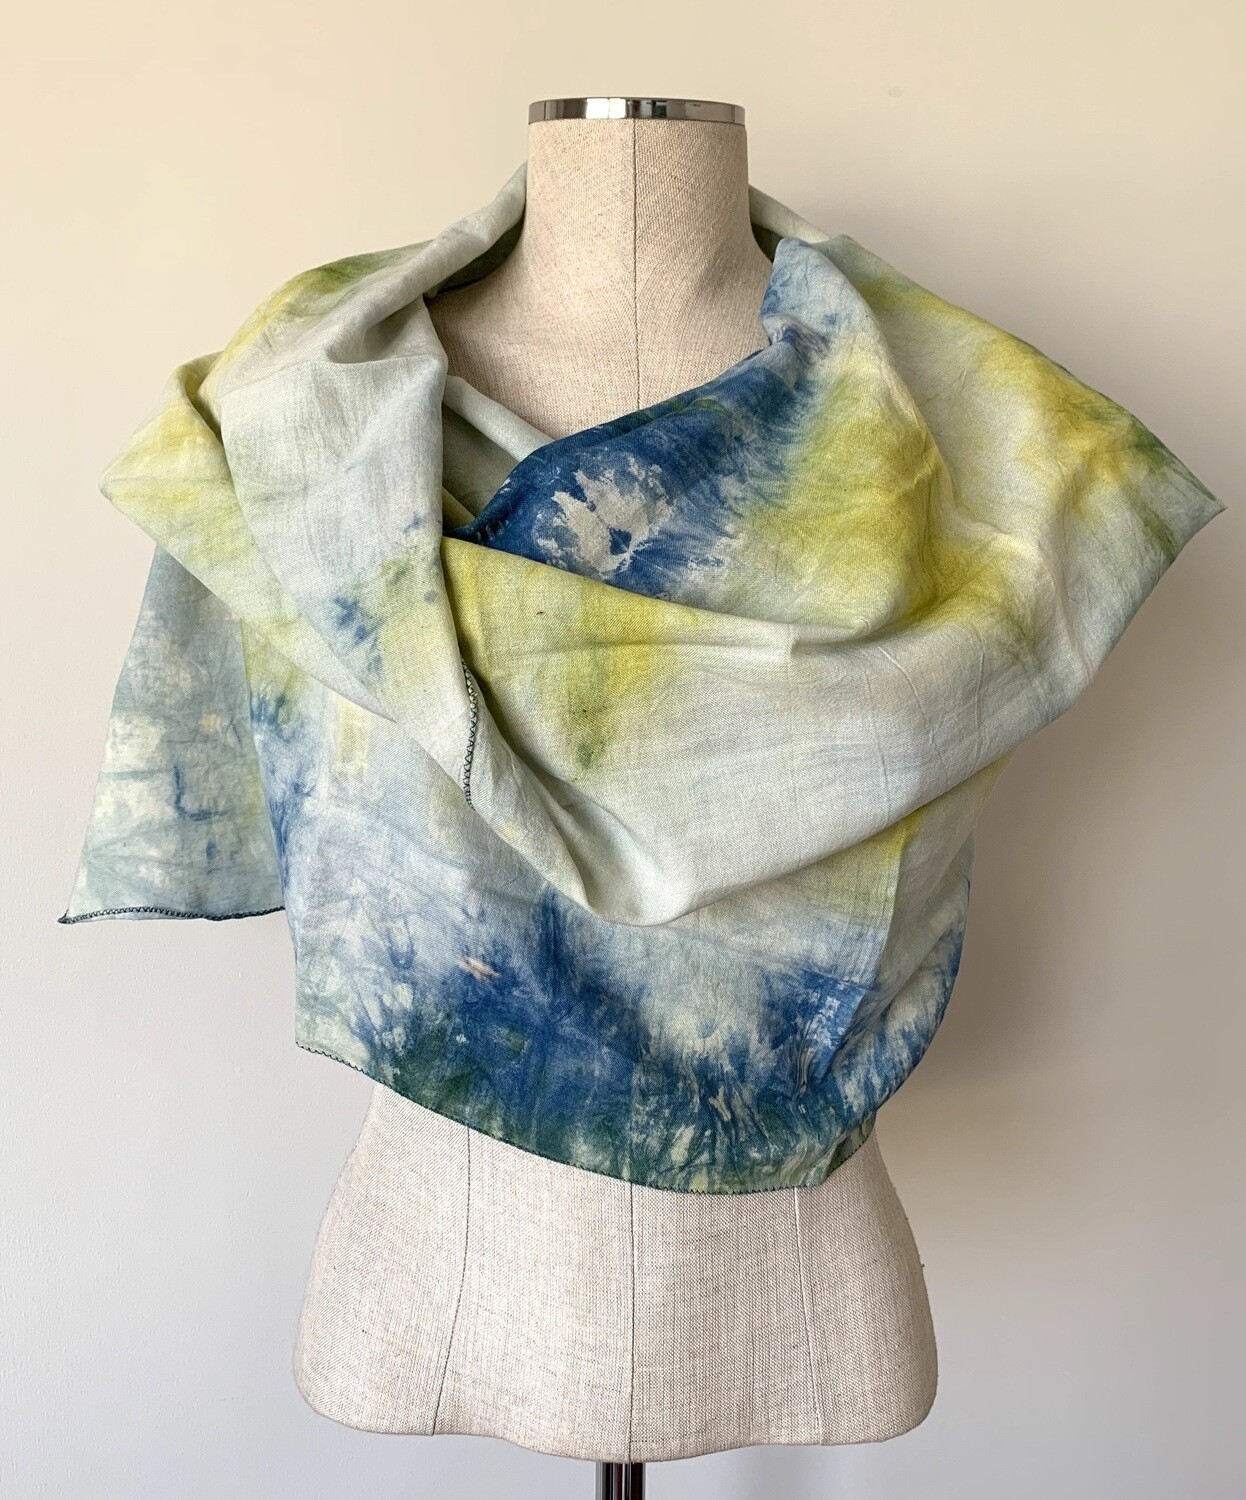 Hand-dyed Ombre Scarf: Citrine & Lapis Lazuli